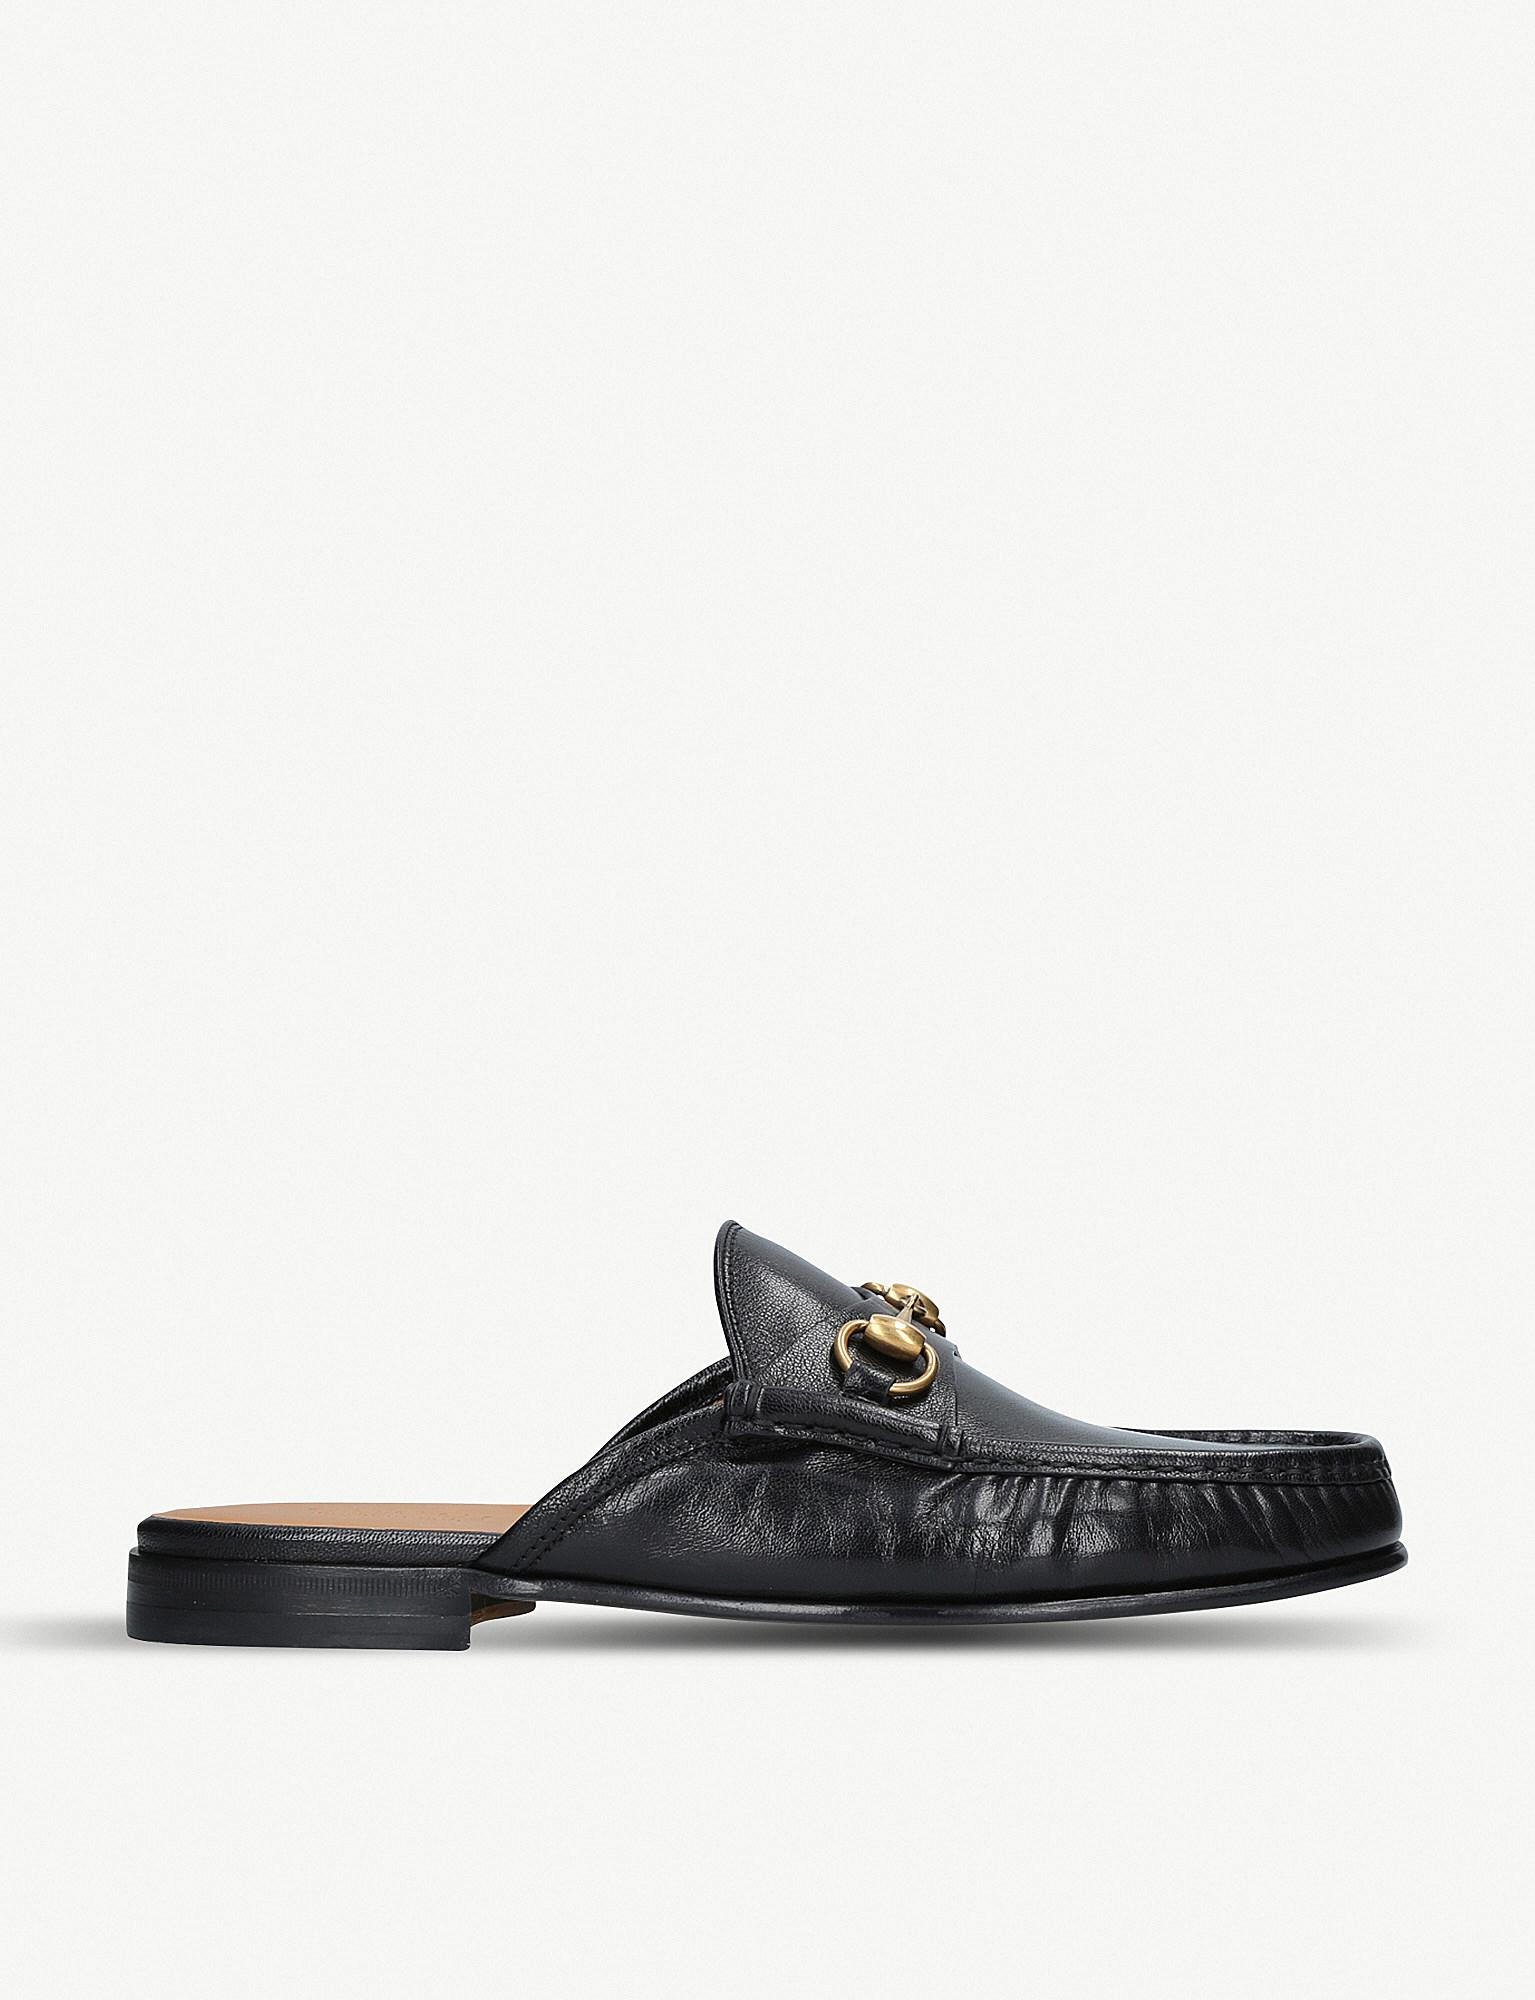 2151f9e42 Gucci Roos Horsebit Open Back Leather Loafers in Black for Men - Lyst